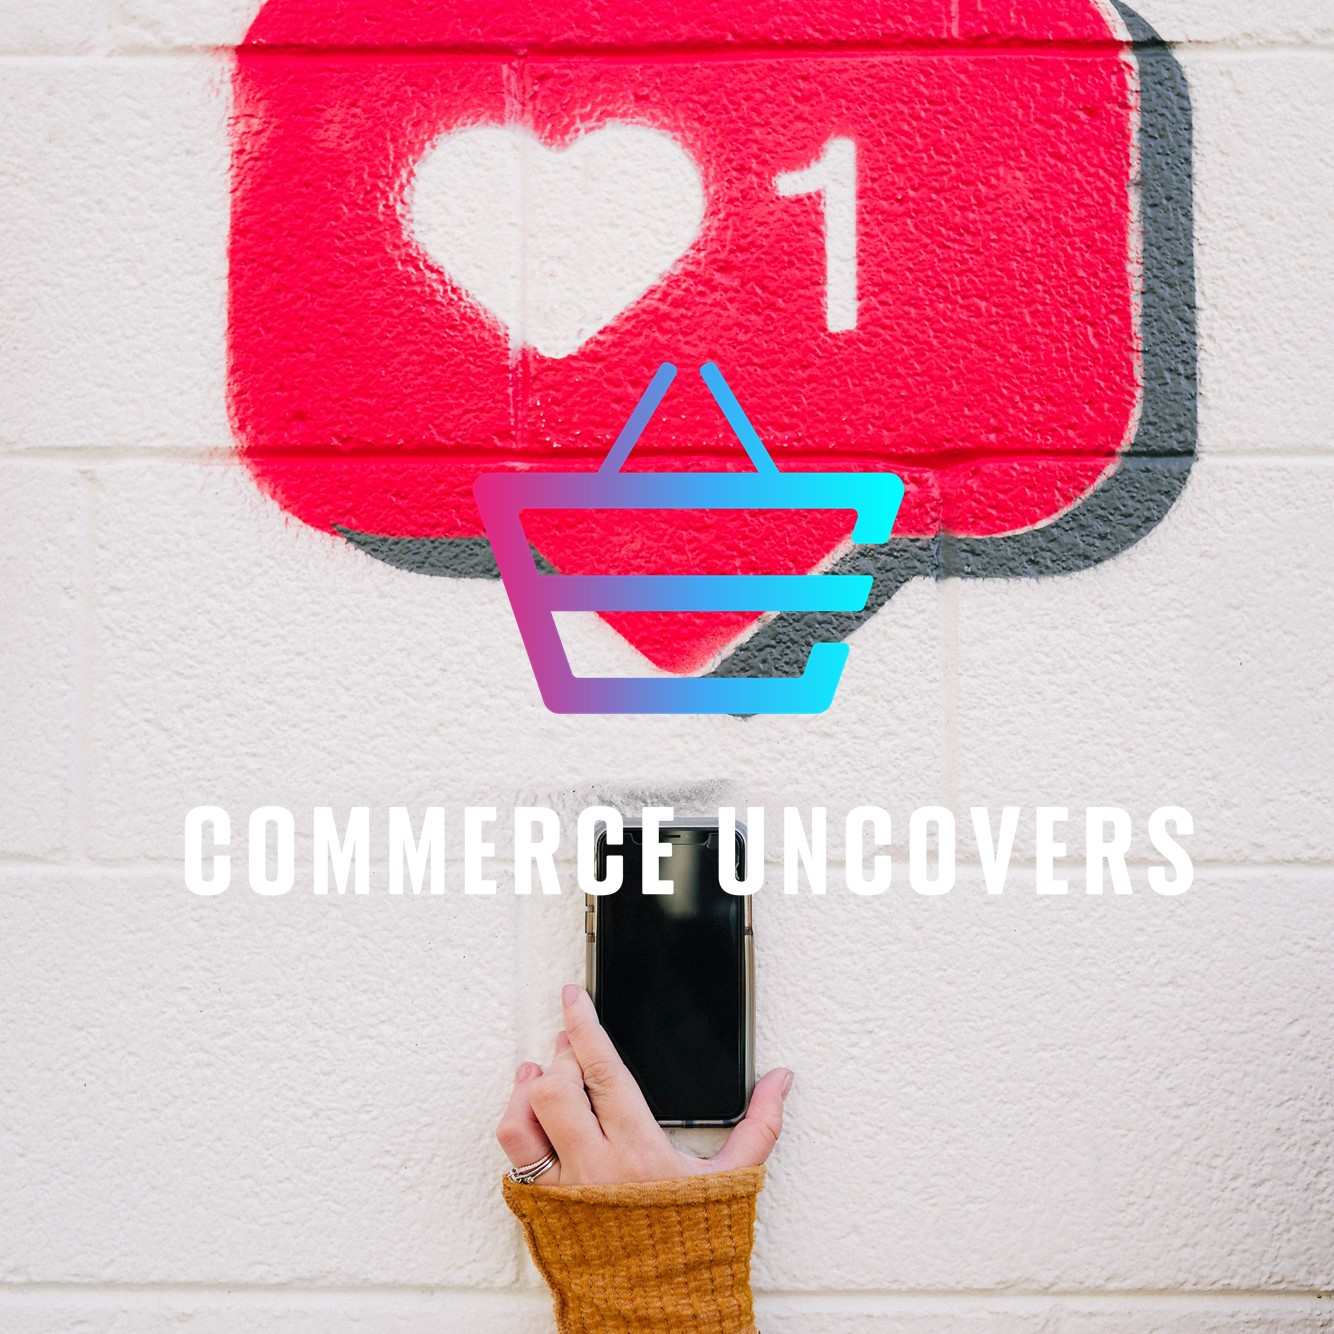 Commerce Uncovers: Spice Up Your Shopping With Shoppertainment